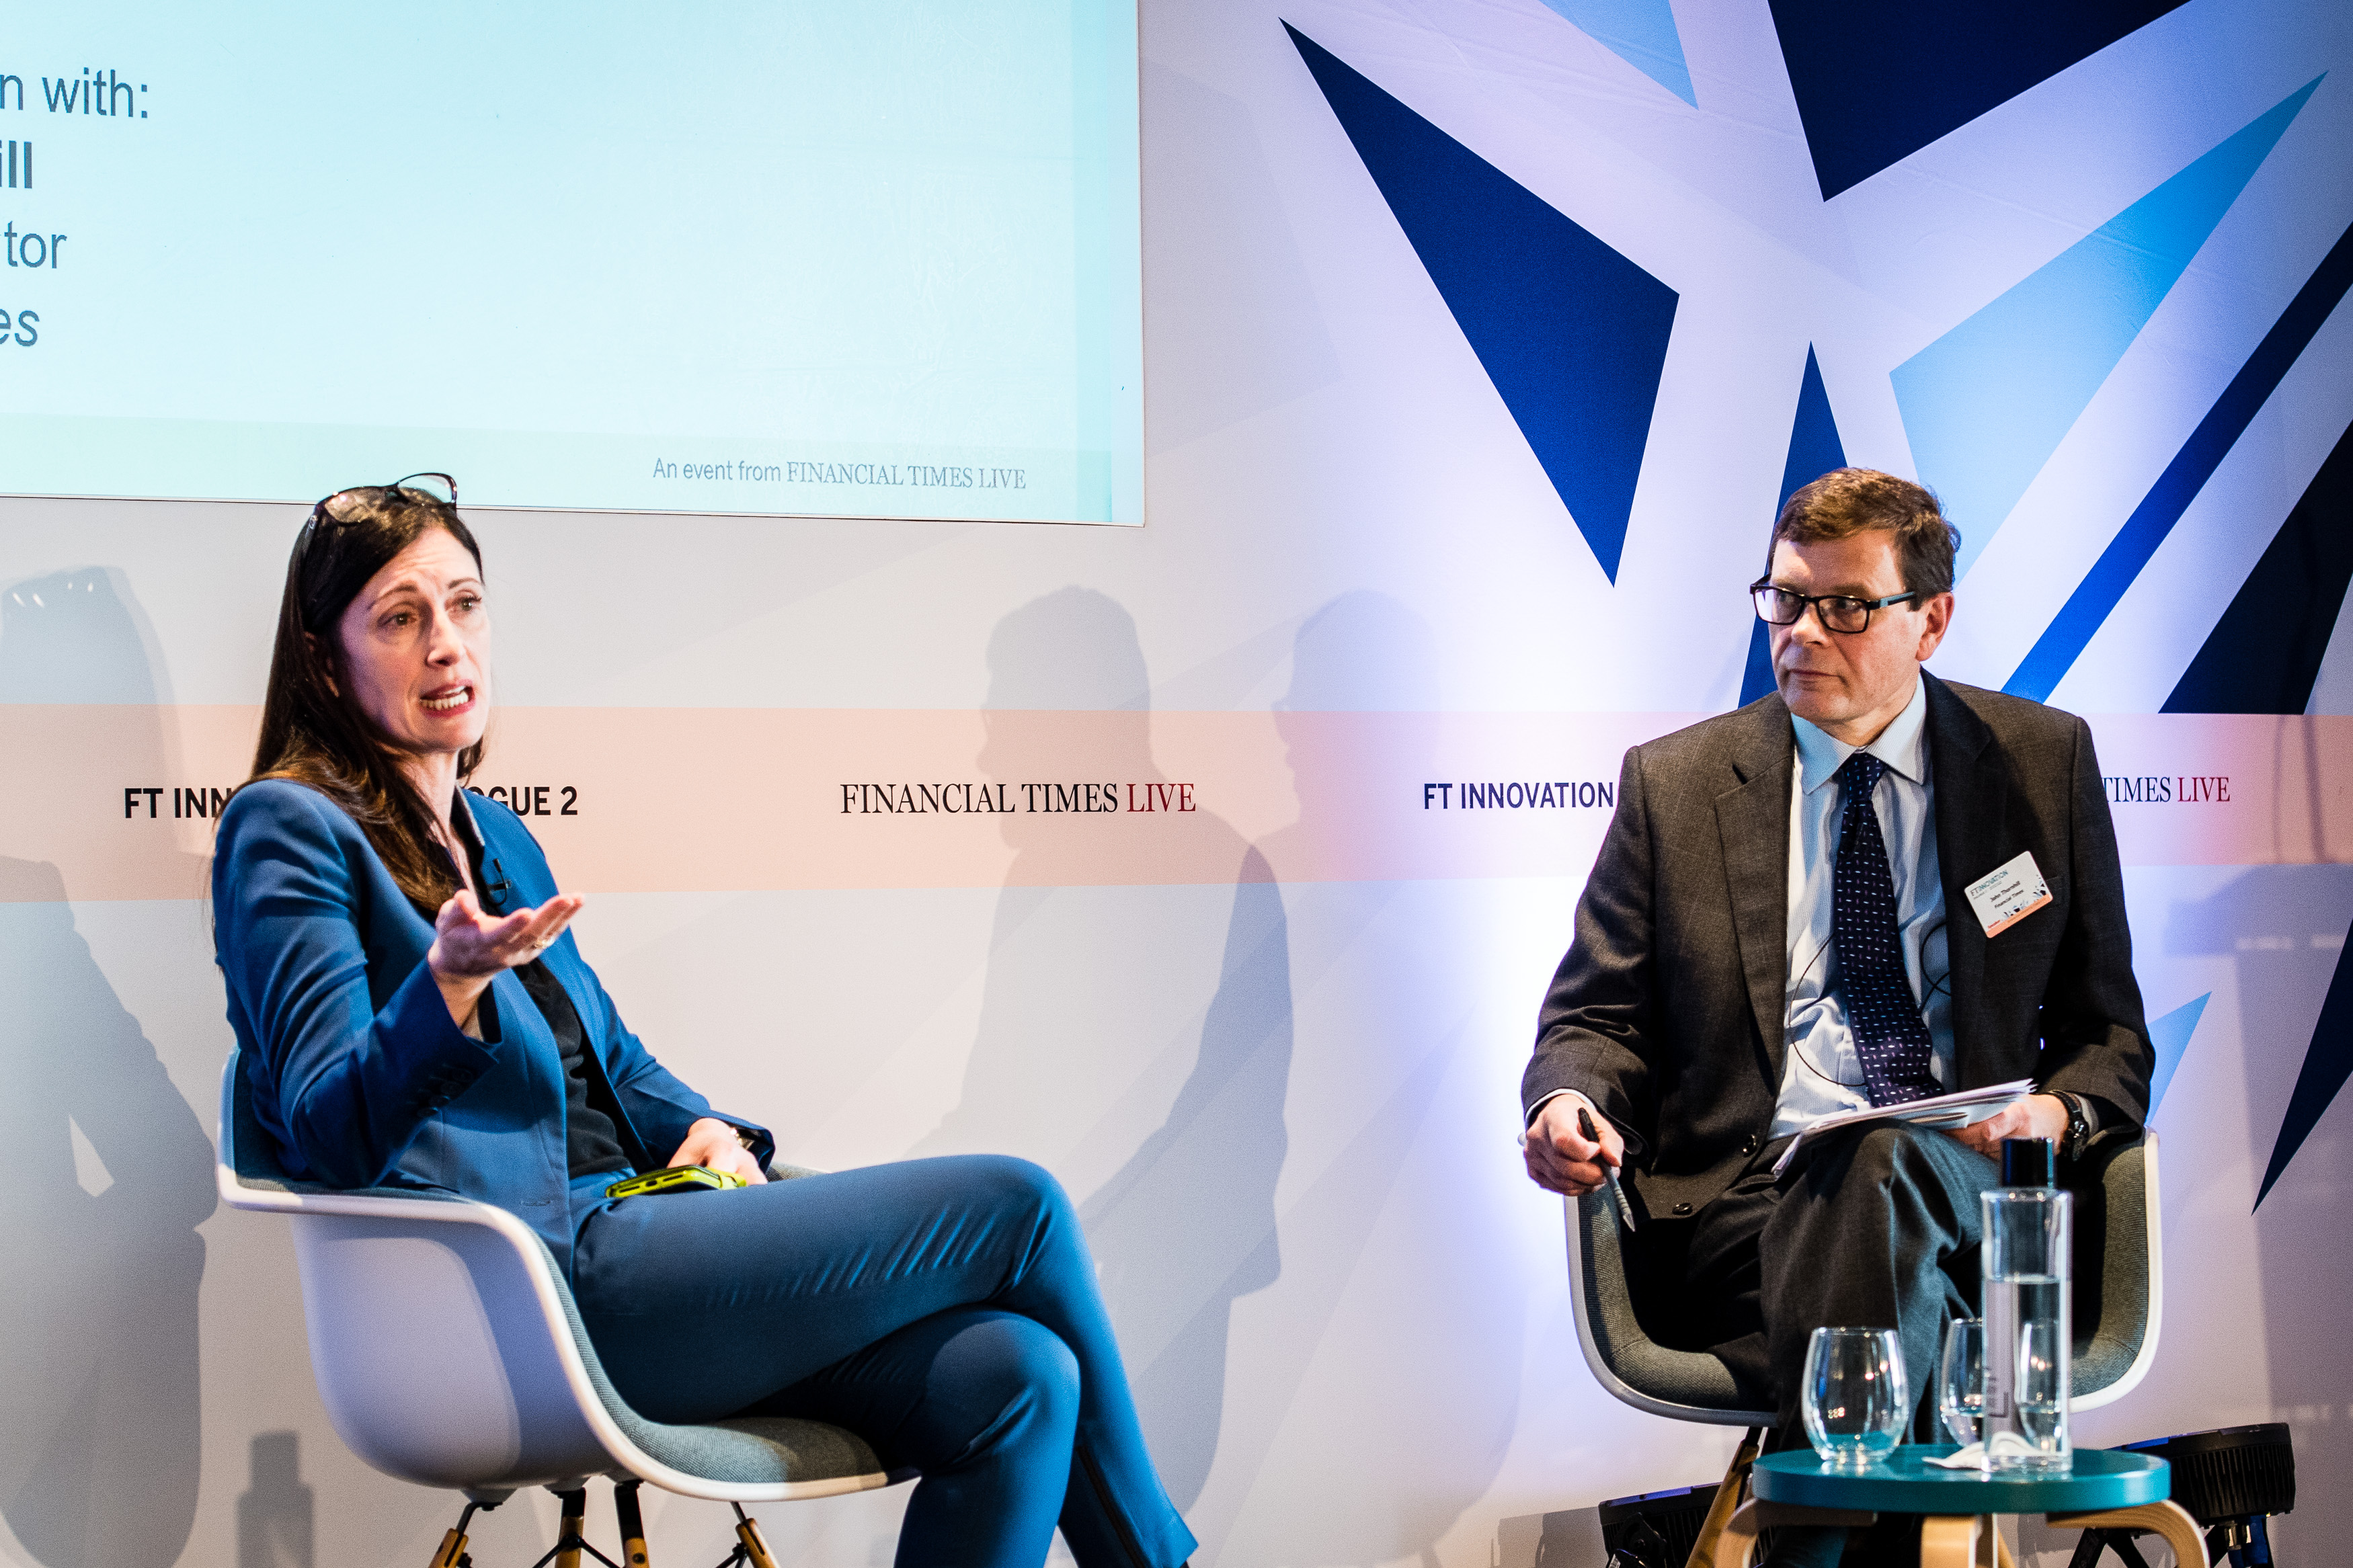 Microsoft Uk CEO Cindy Rose at FT Innovate event in London